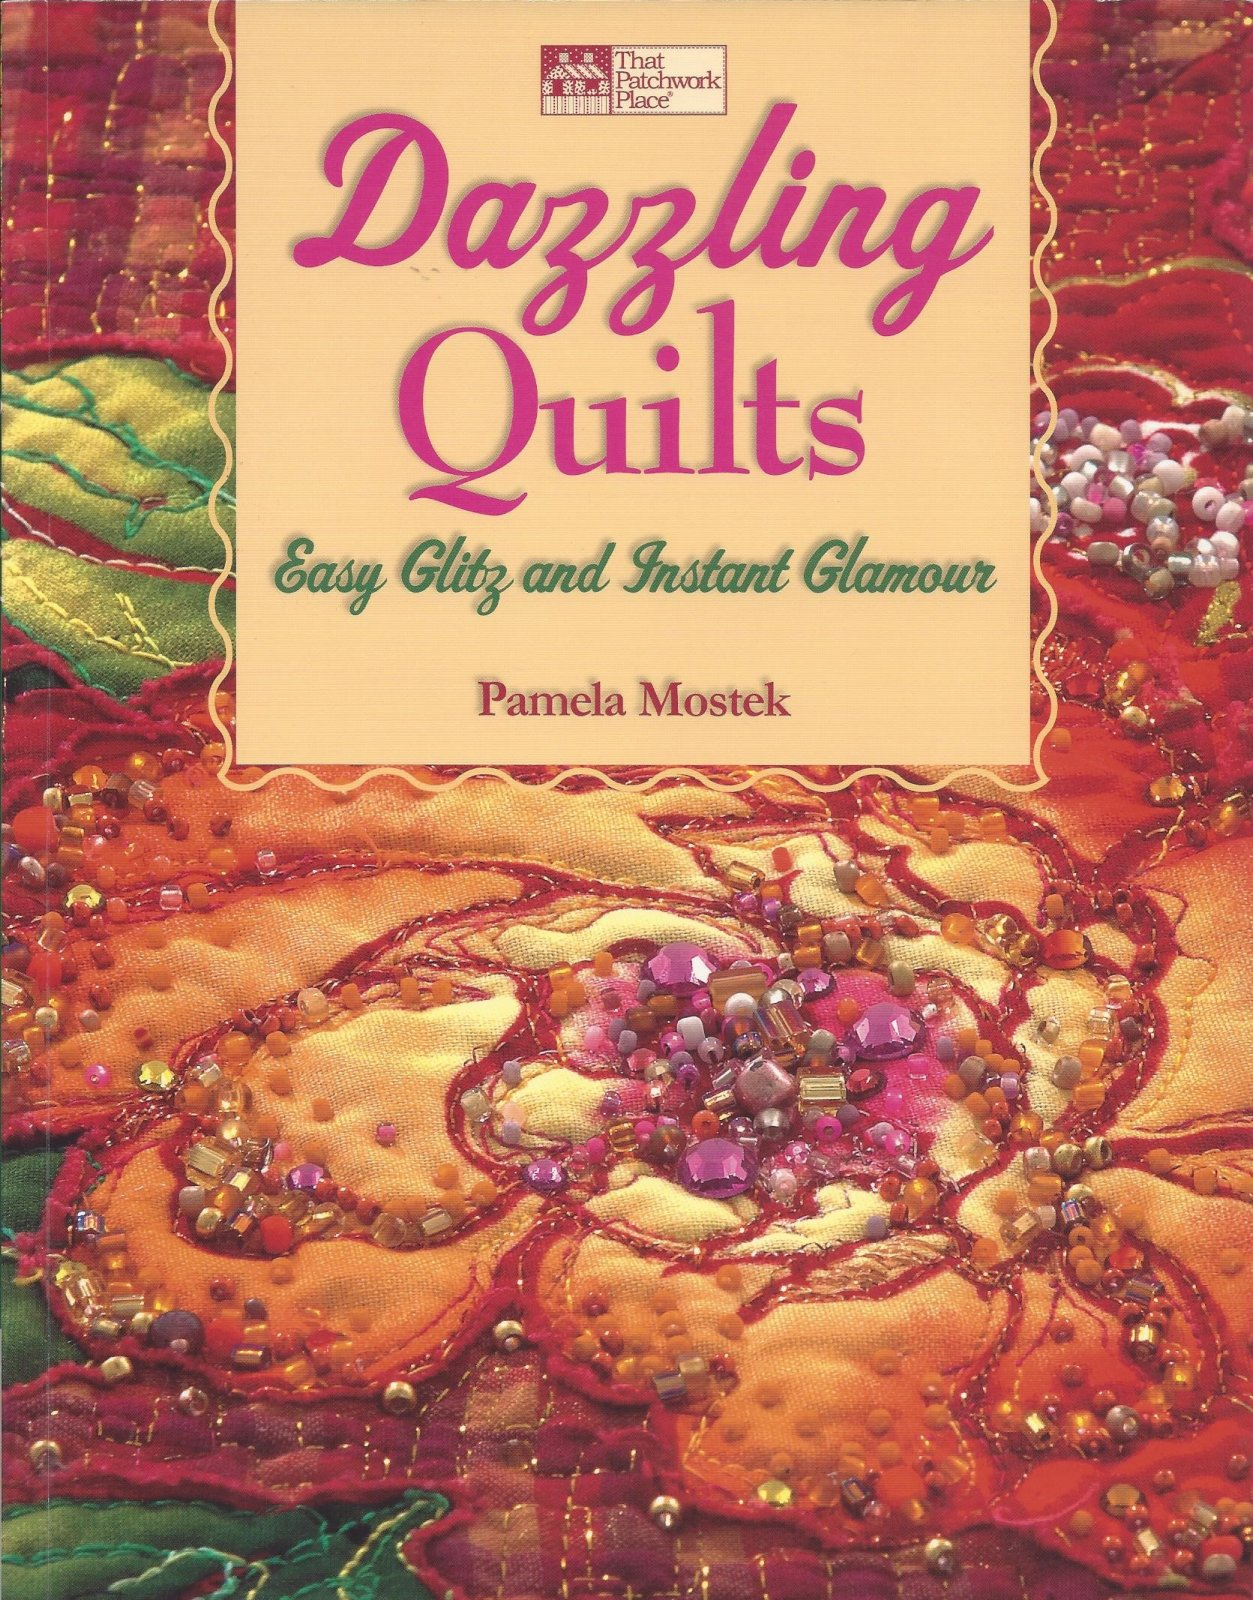 Dazzling Quilts